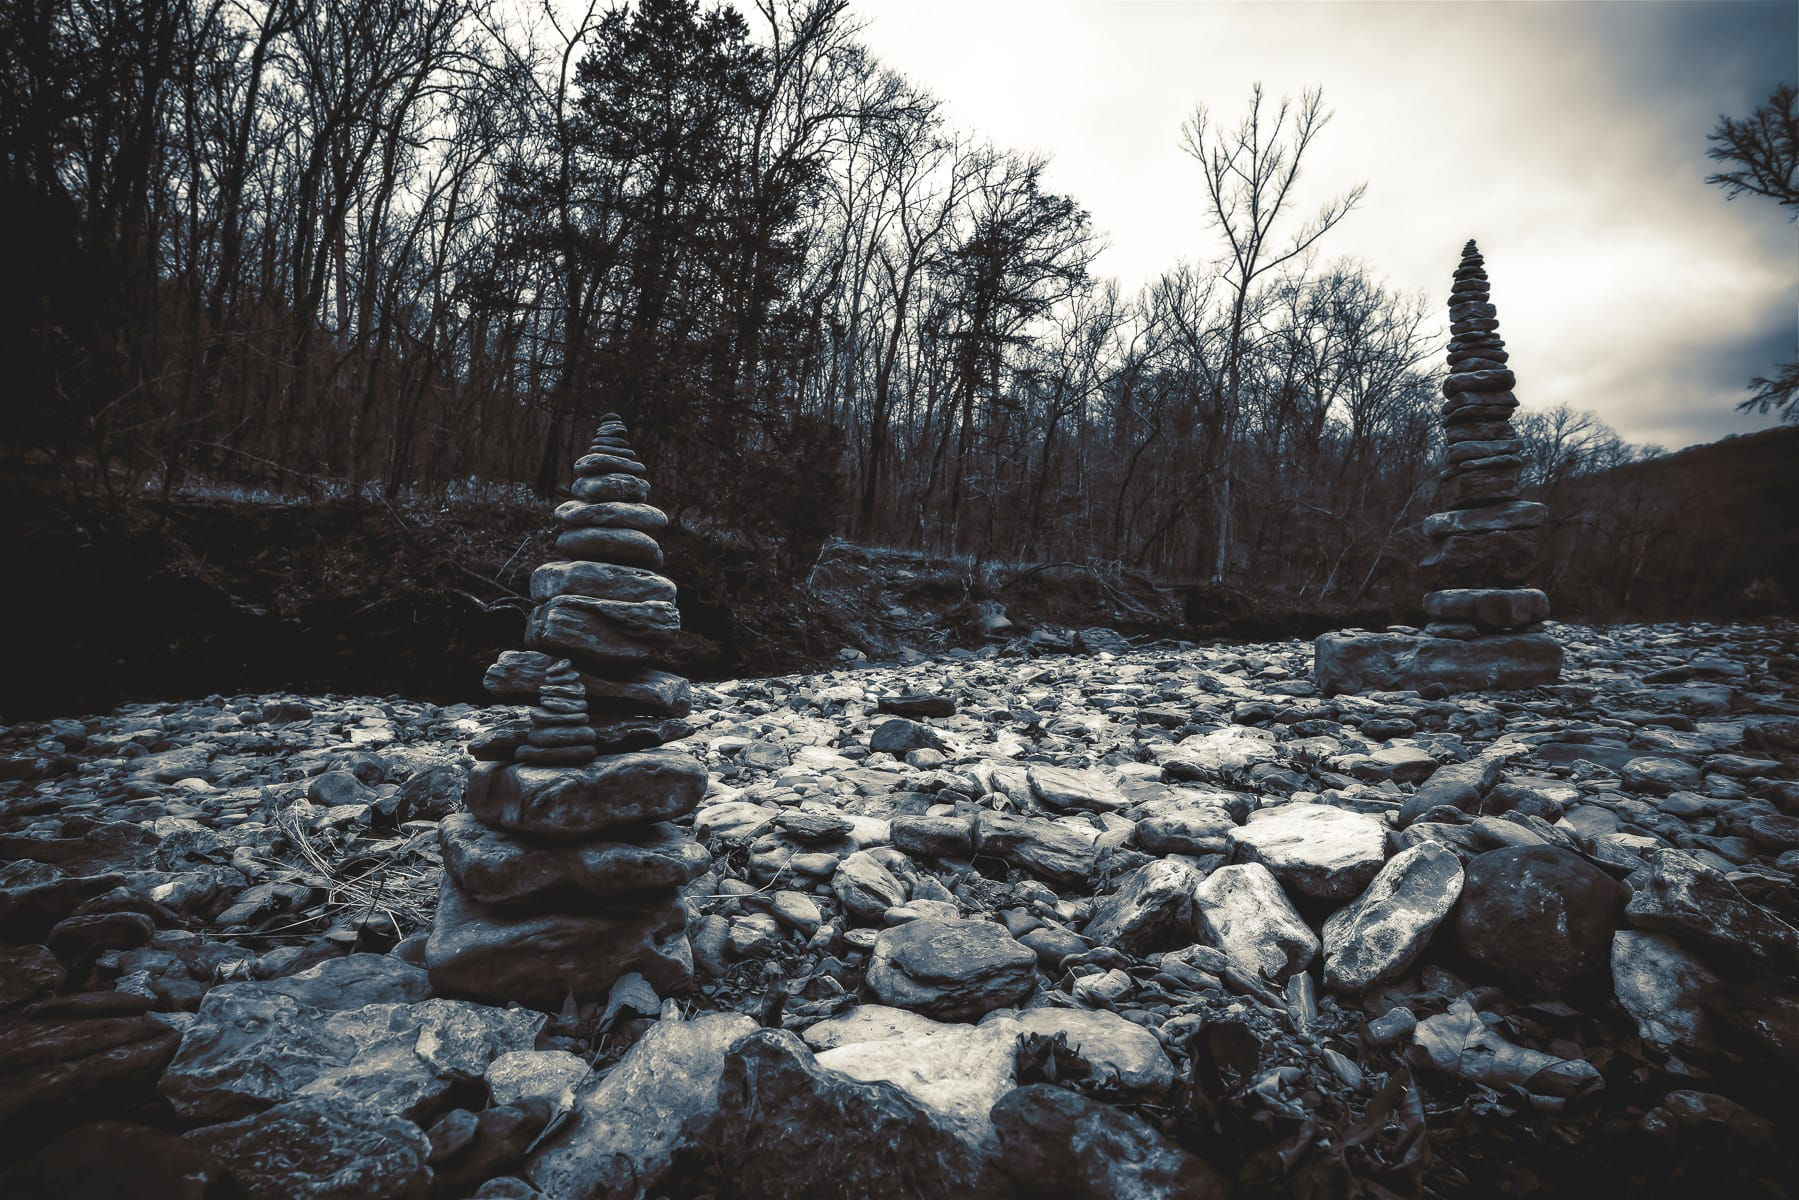 Stacked rocks spotted in a dry riverbed at Devil's Den State Park, Arkansas.